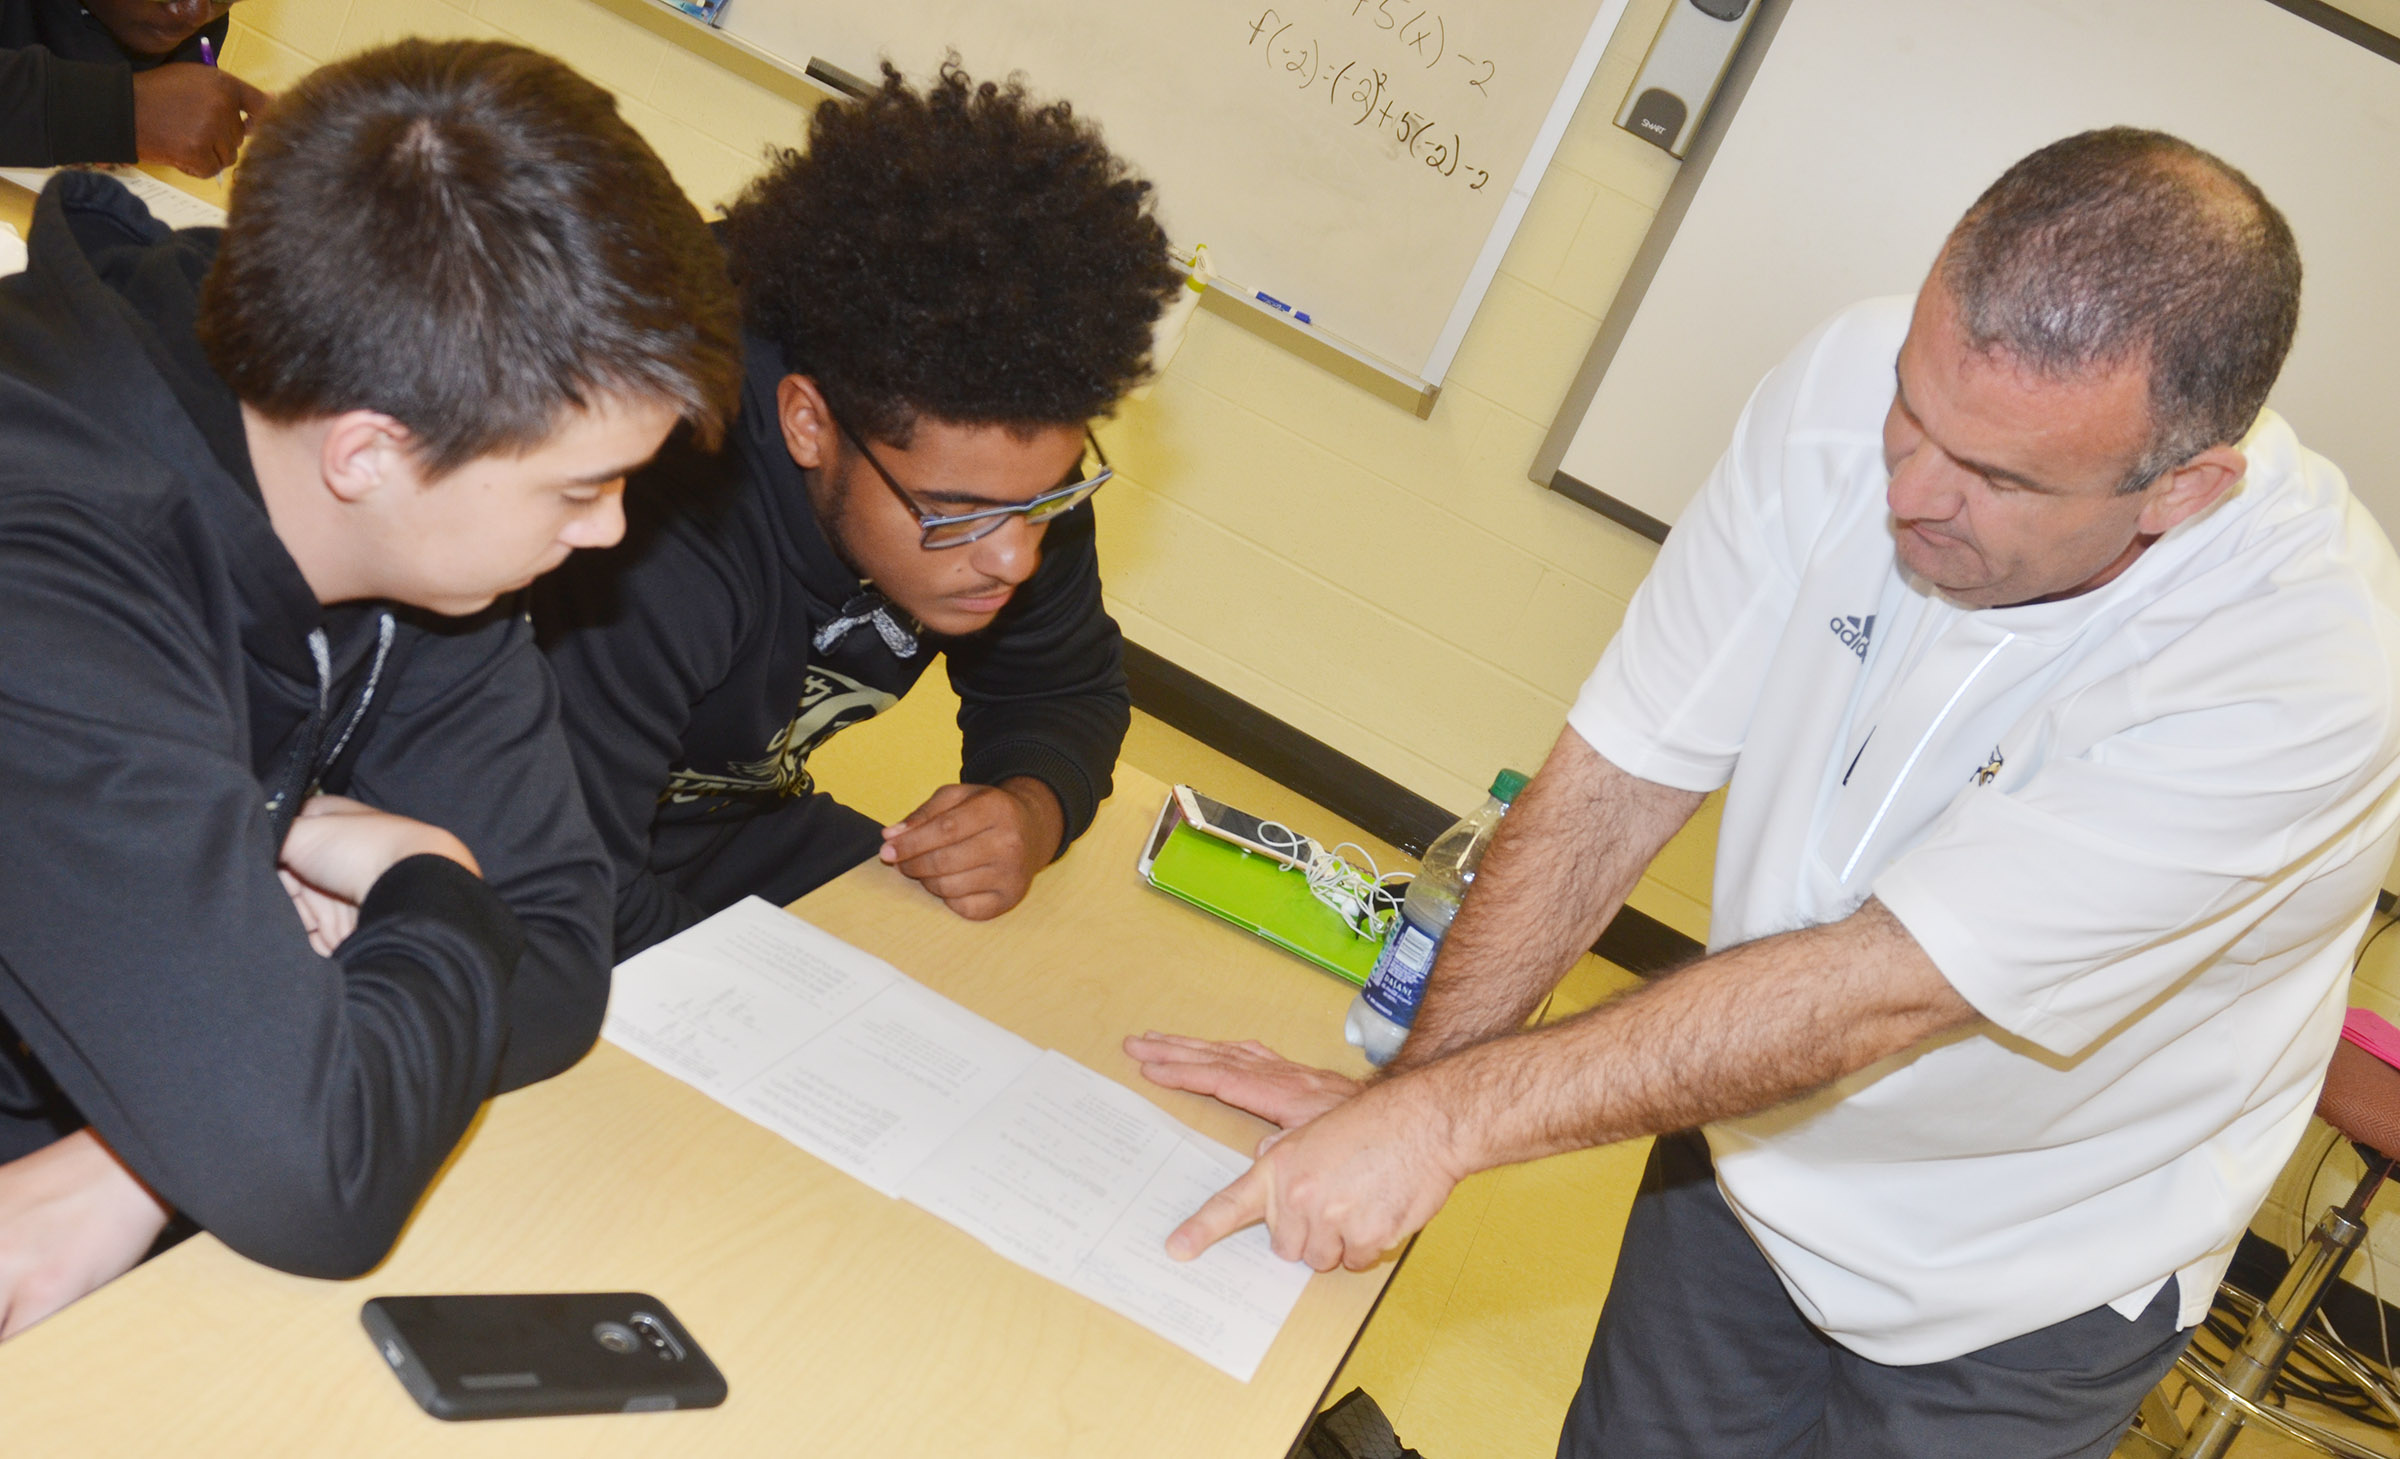 CHS teacher Kevin Rafferty helps sophomores Cole Kidwell, at left, and Braden Paige with a math problem.